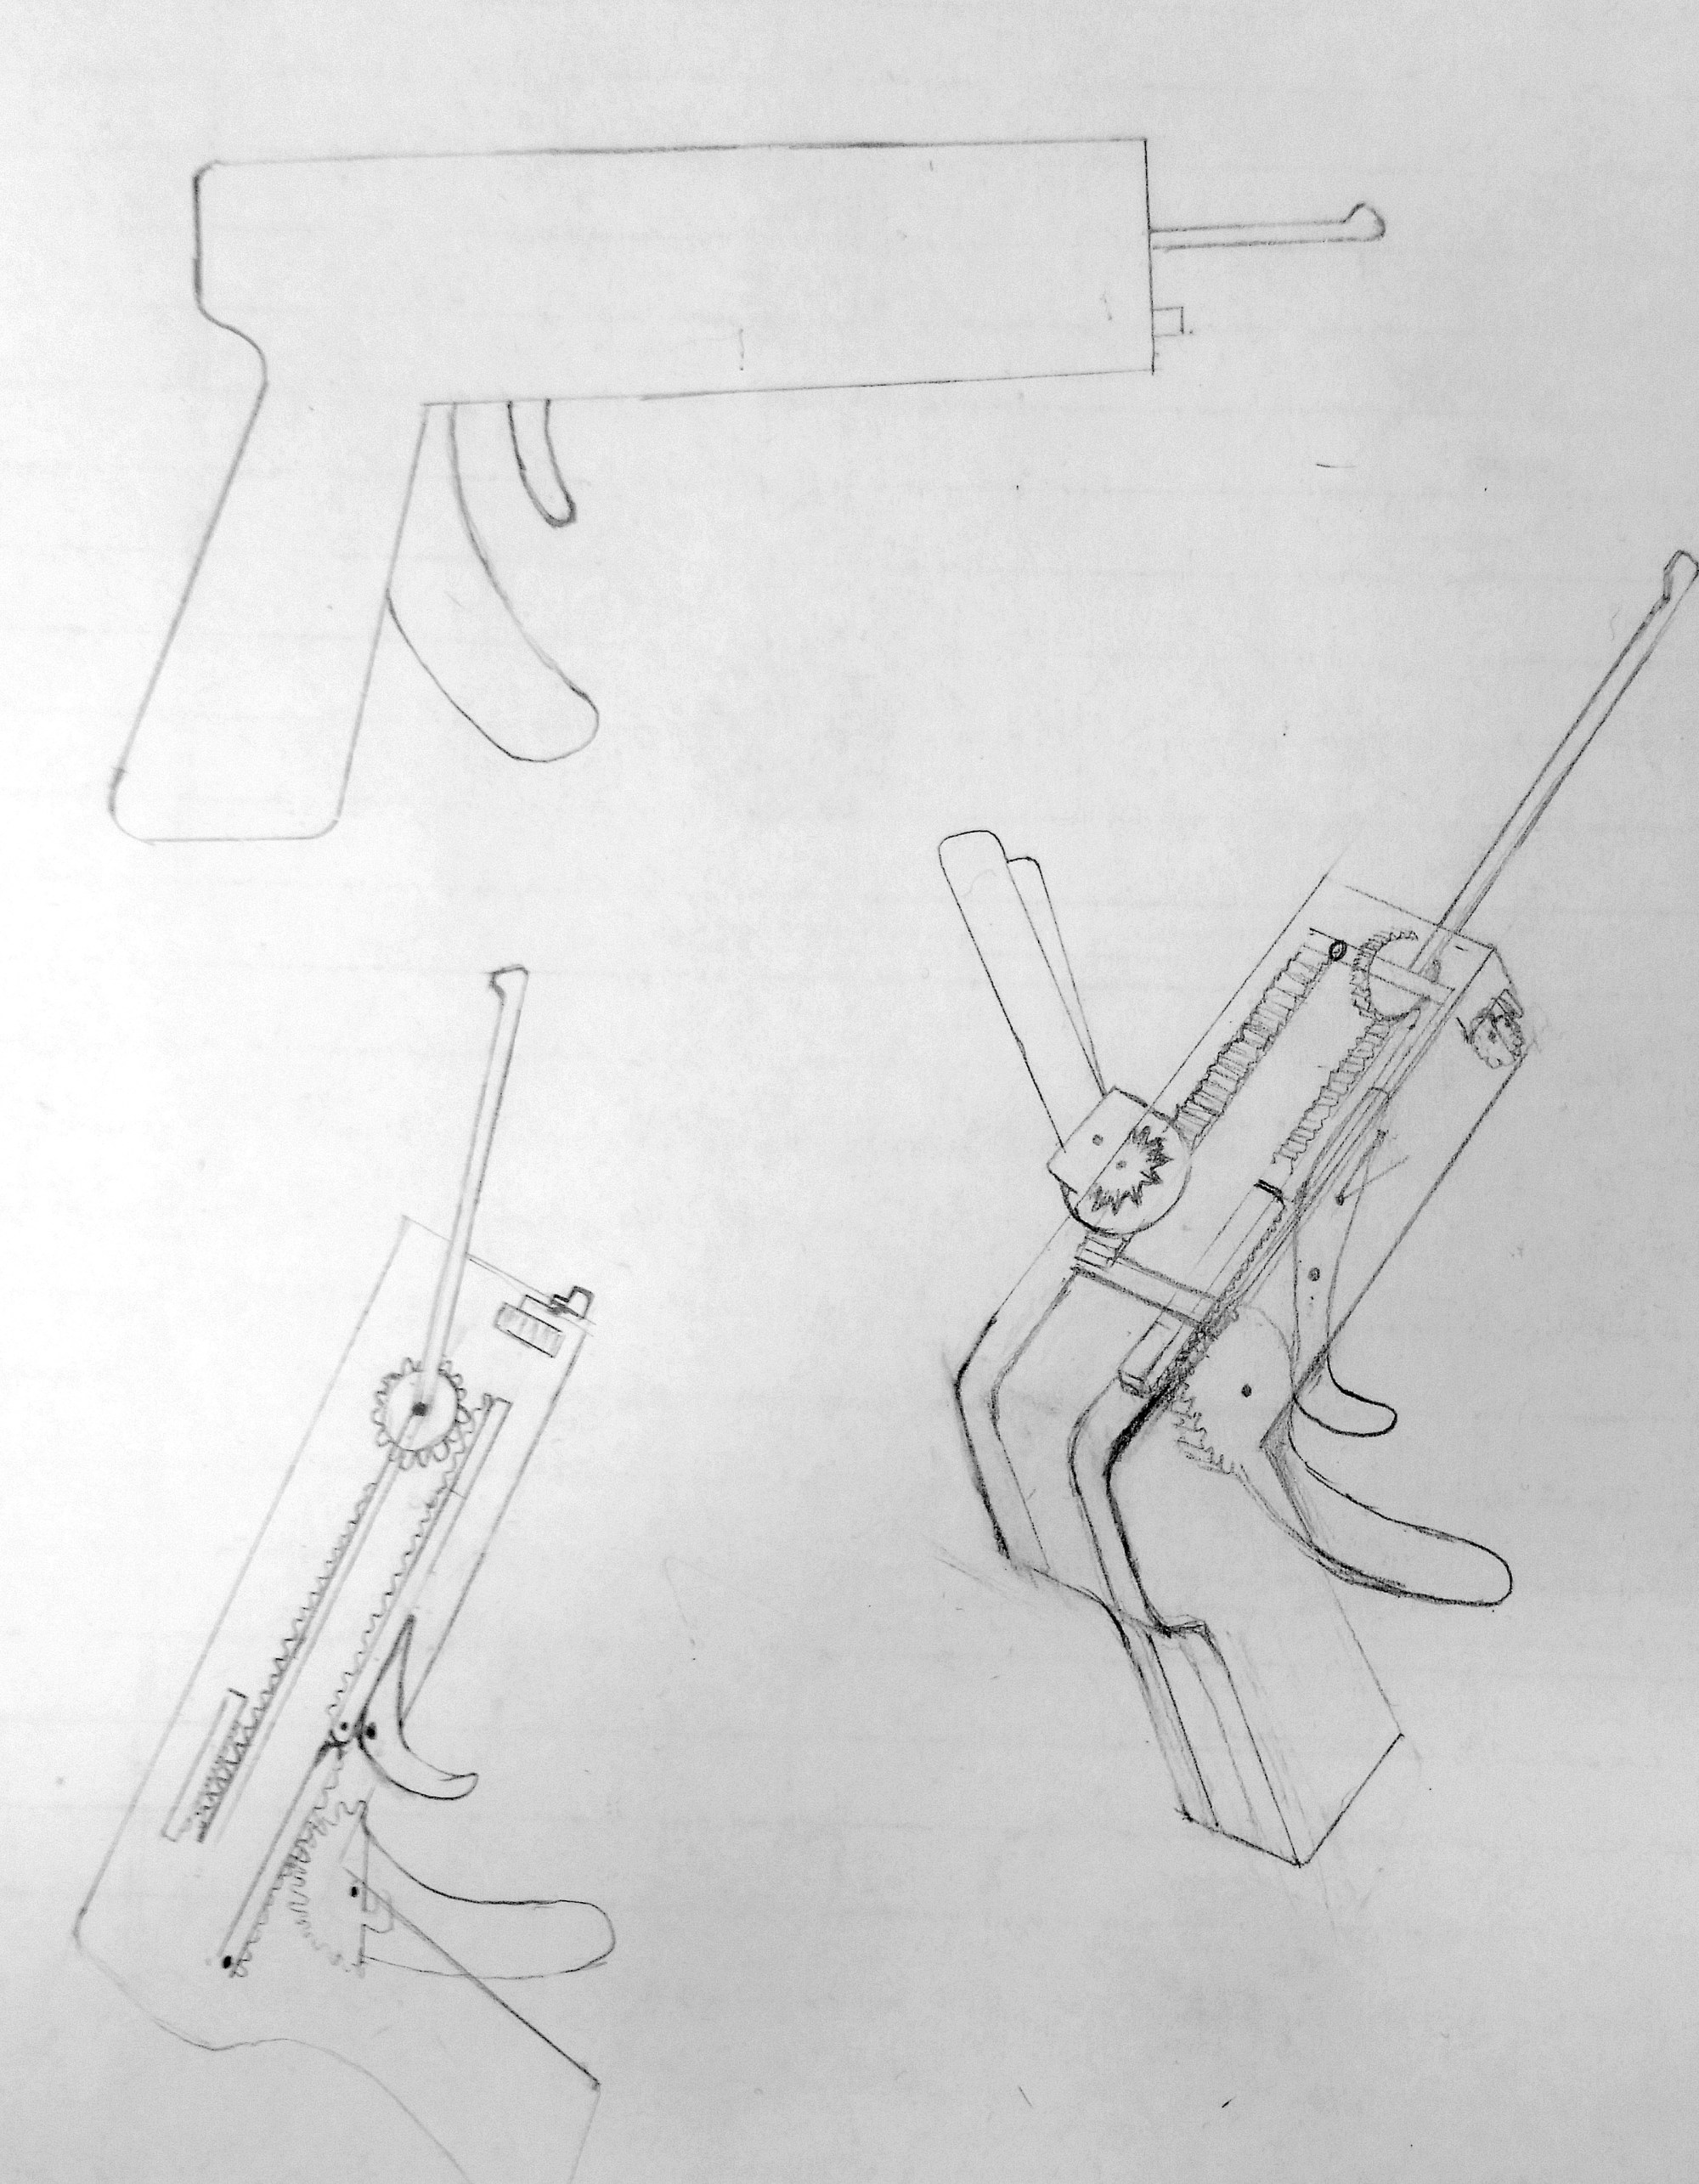 hight resolution of this project created a lock picking mechanism that can easily depress pins on a lock without needing much prior knowledge